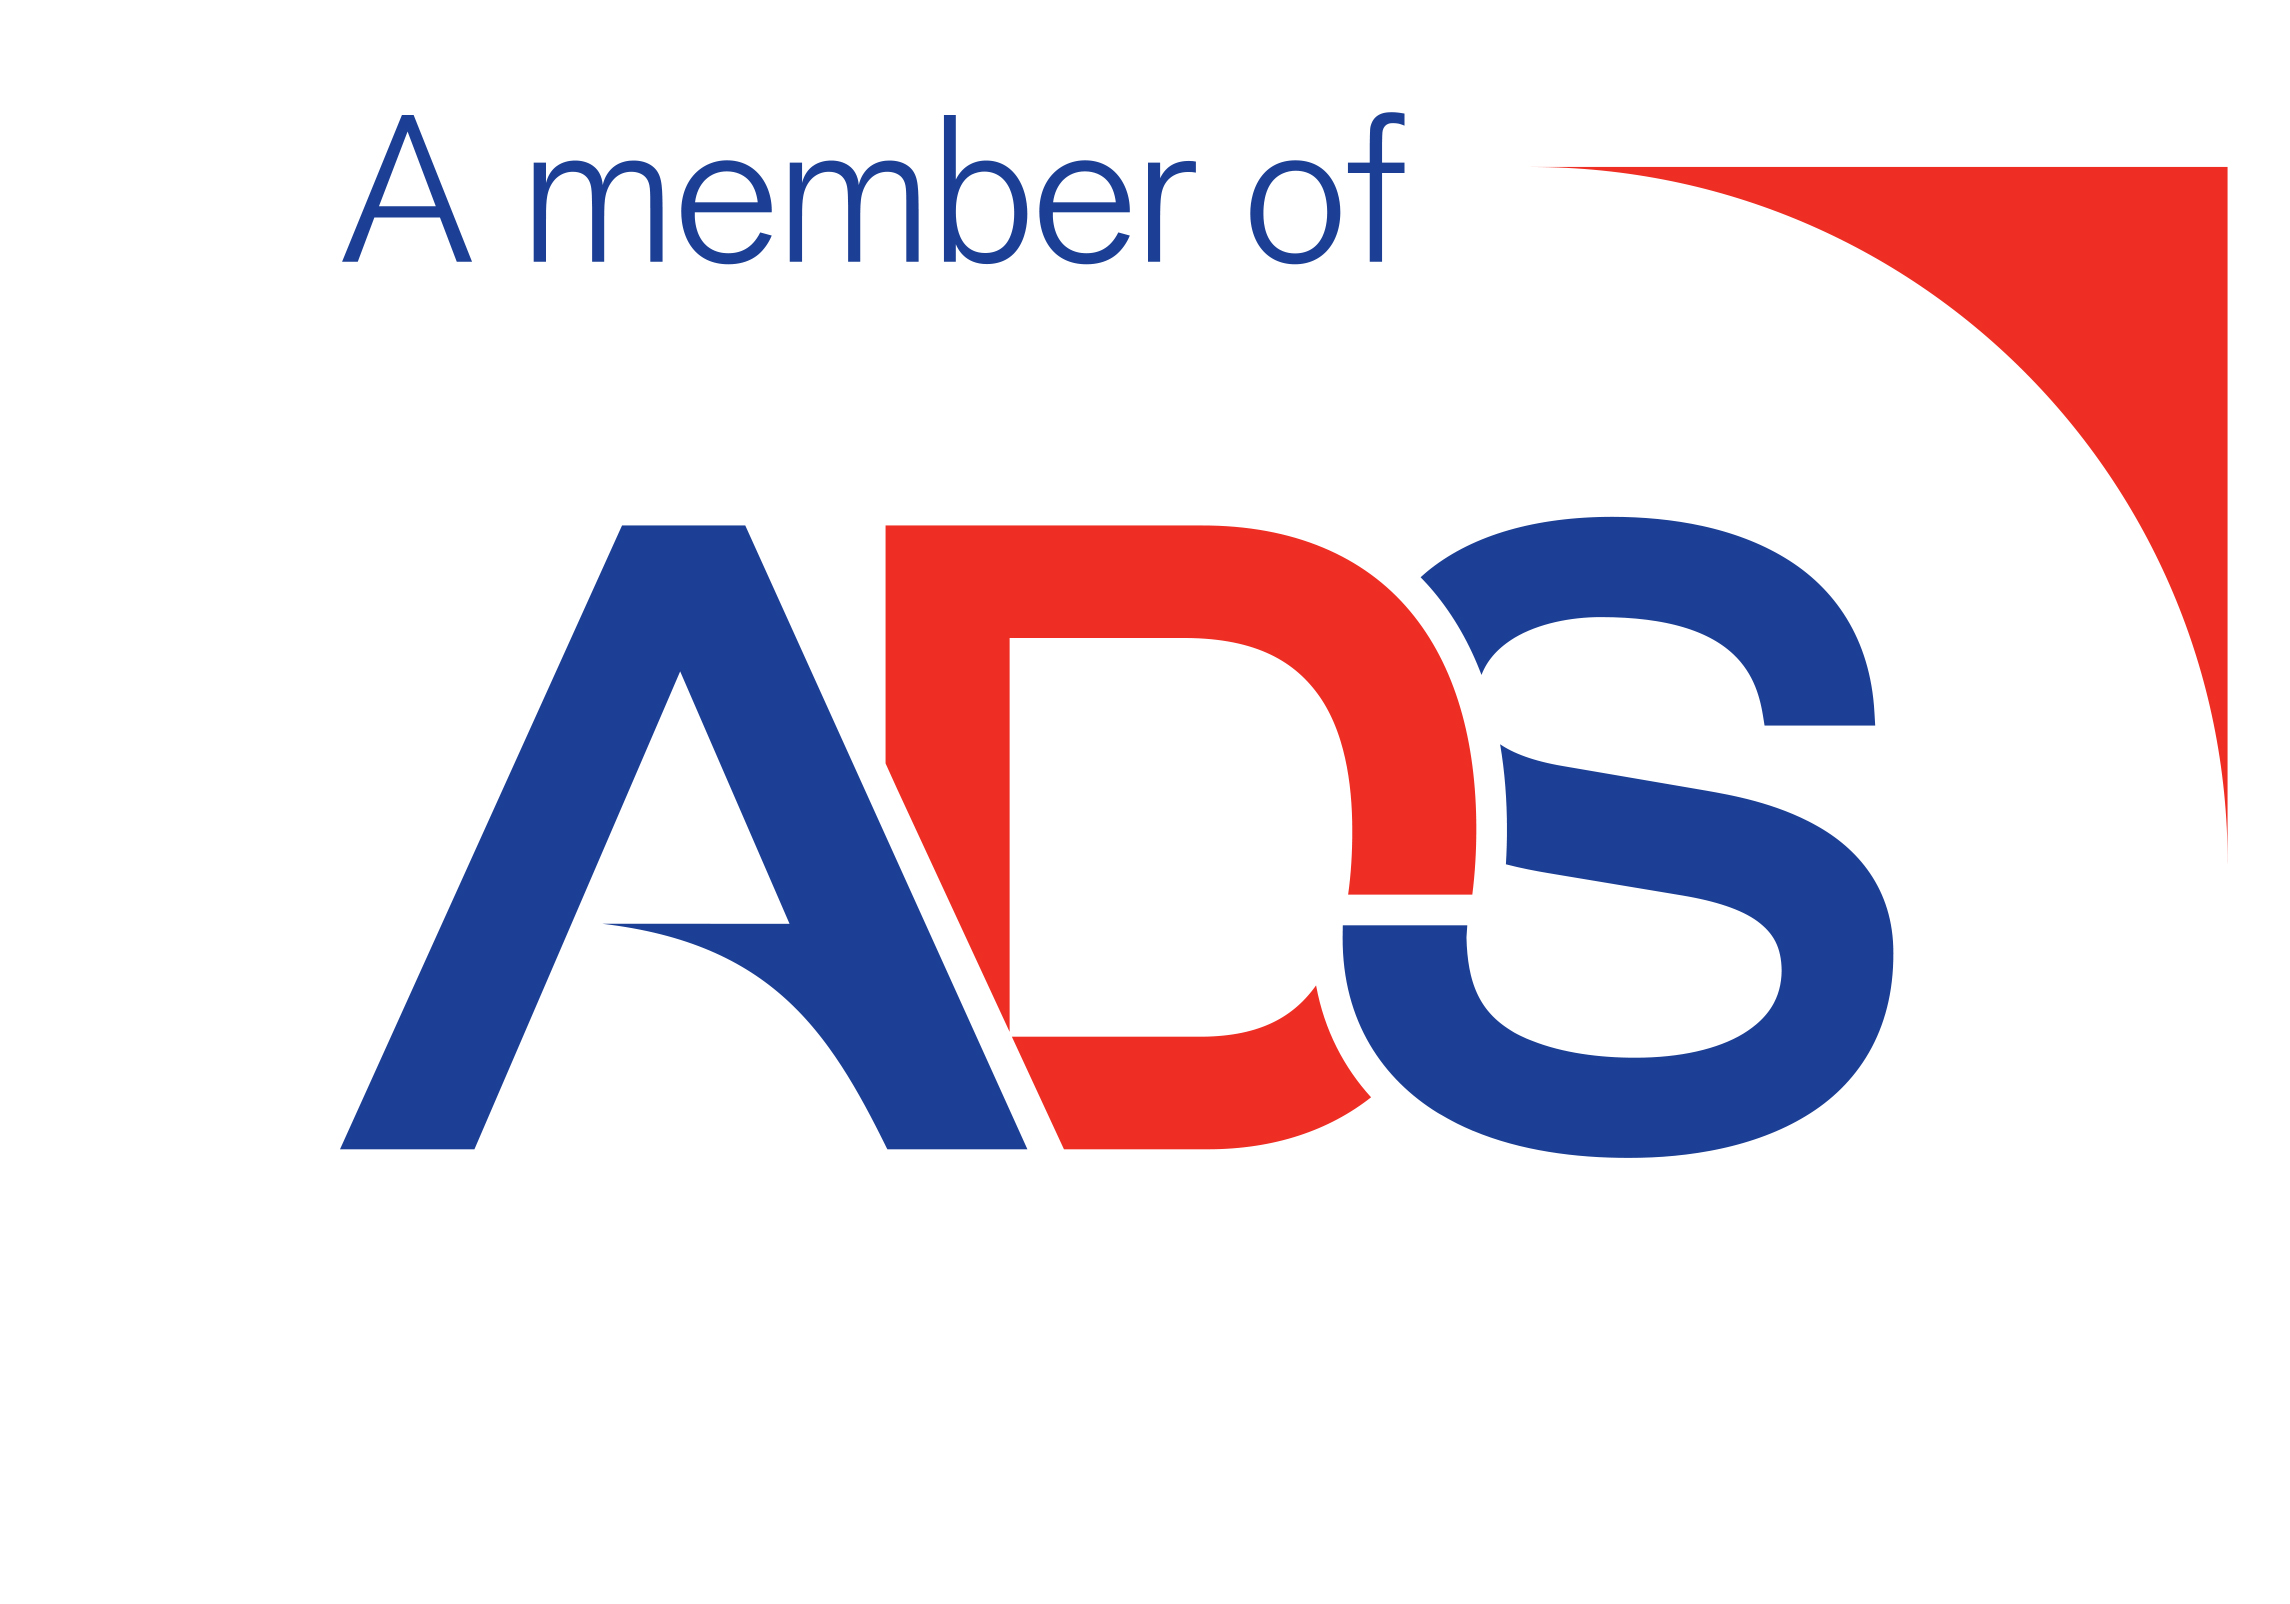 A member of ADS Logo.jpg